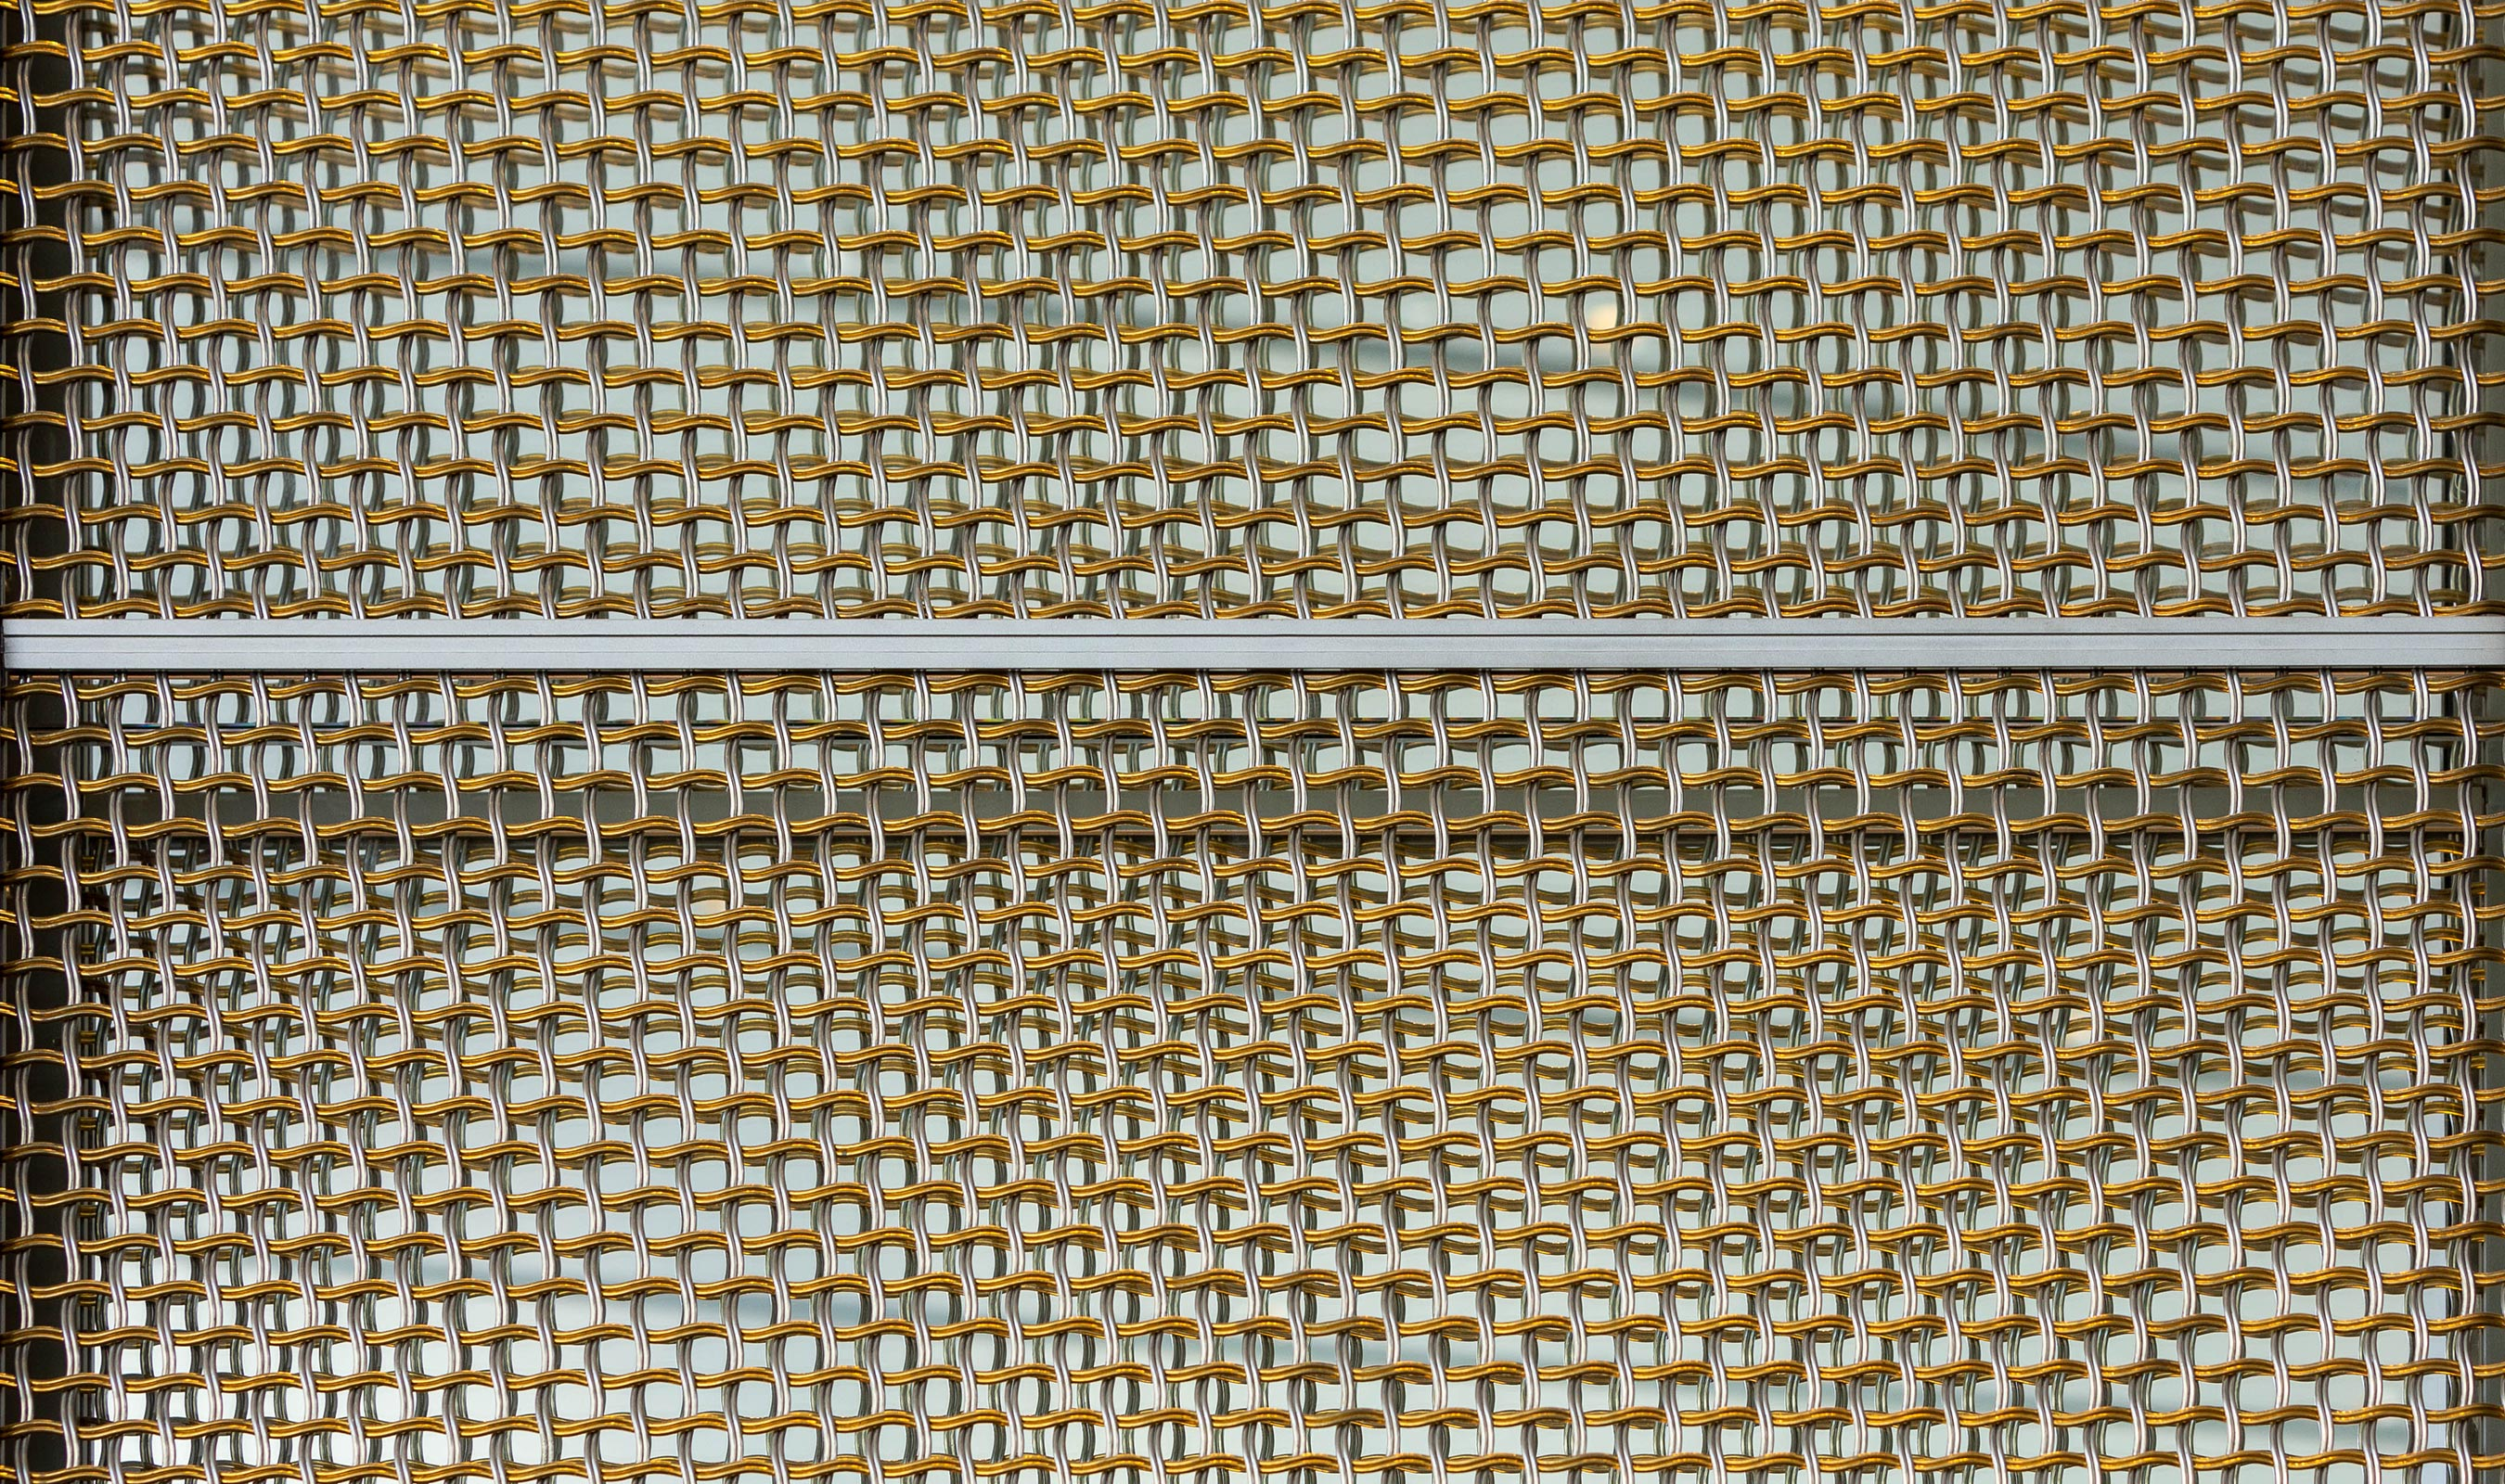 The Banker Wire M22-80 architectural wire mesh pattern uses a pair of nested helical crimped wires to define the circular mesh shape.